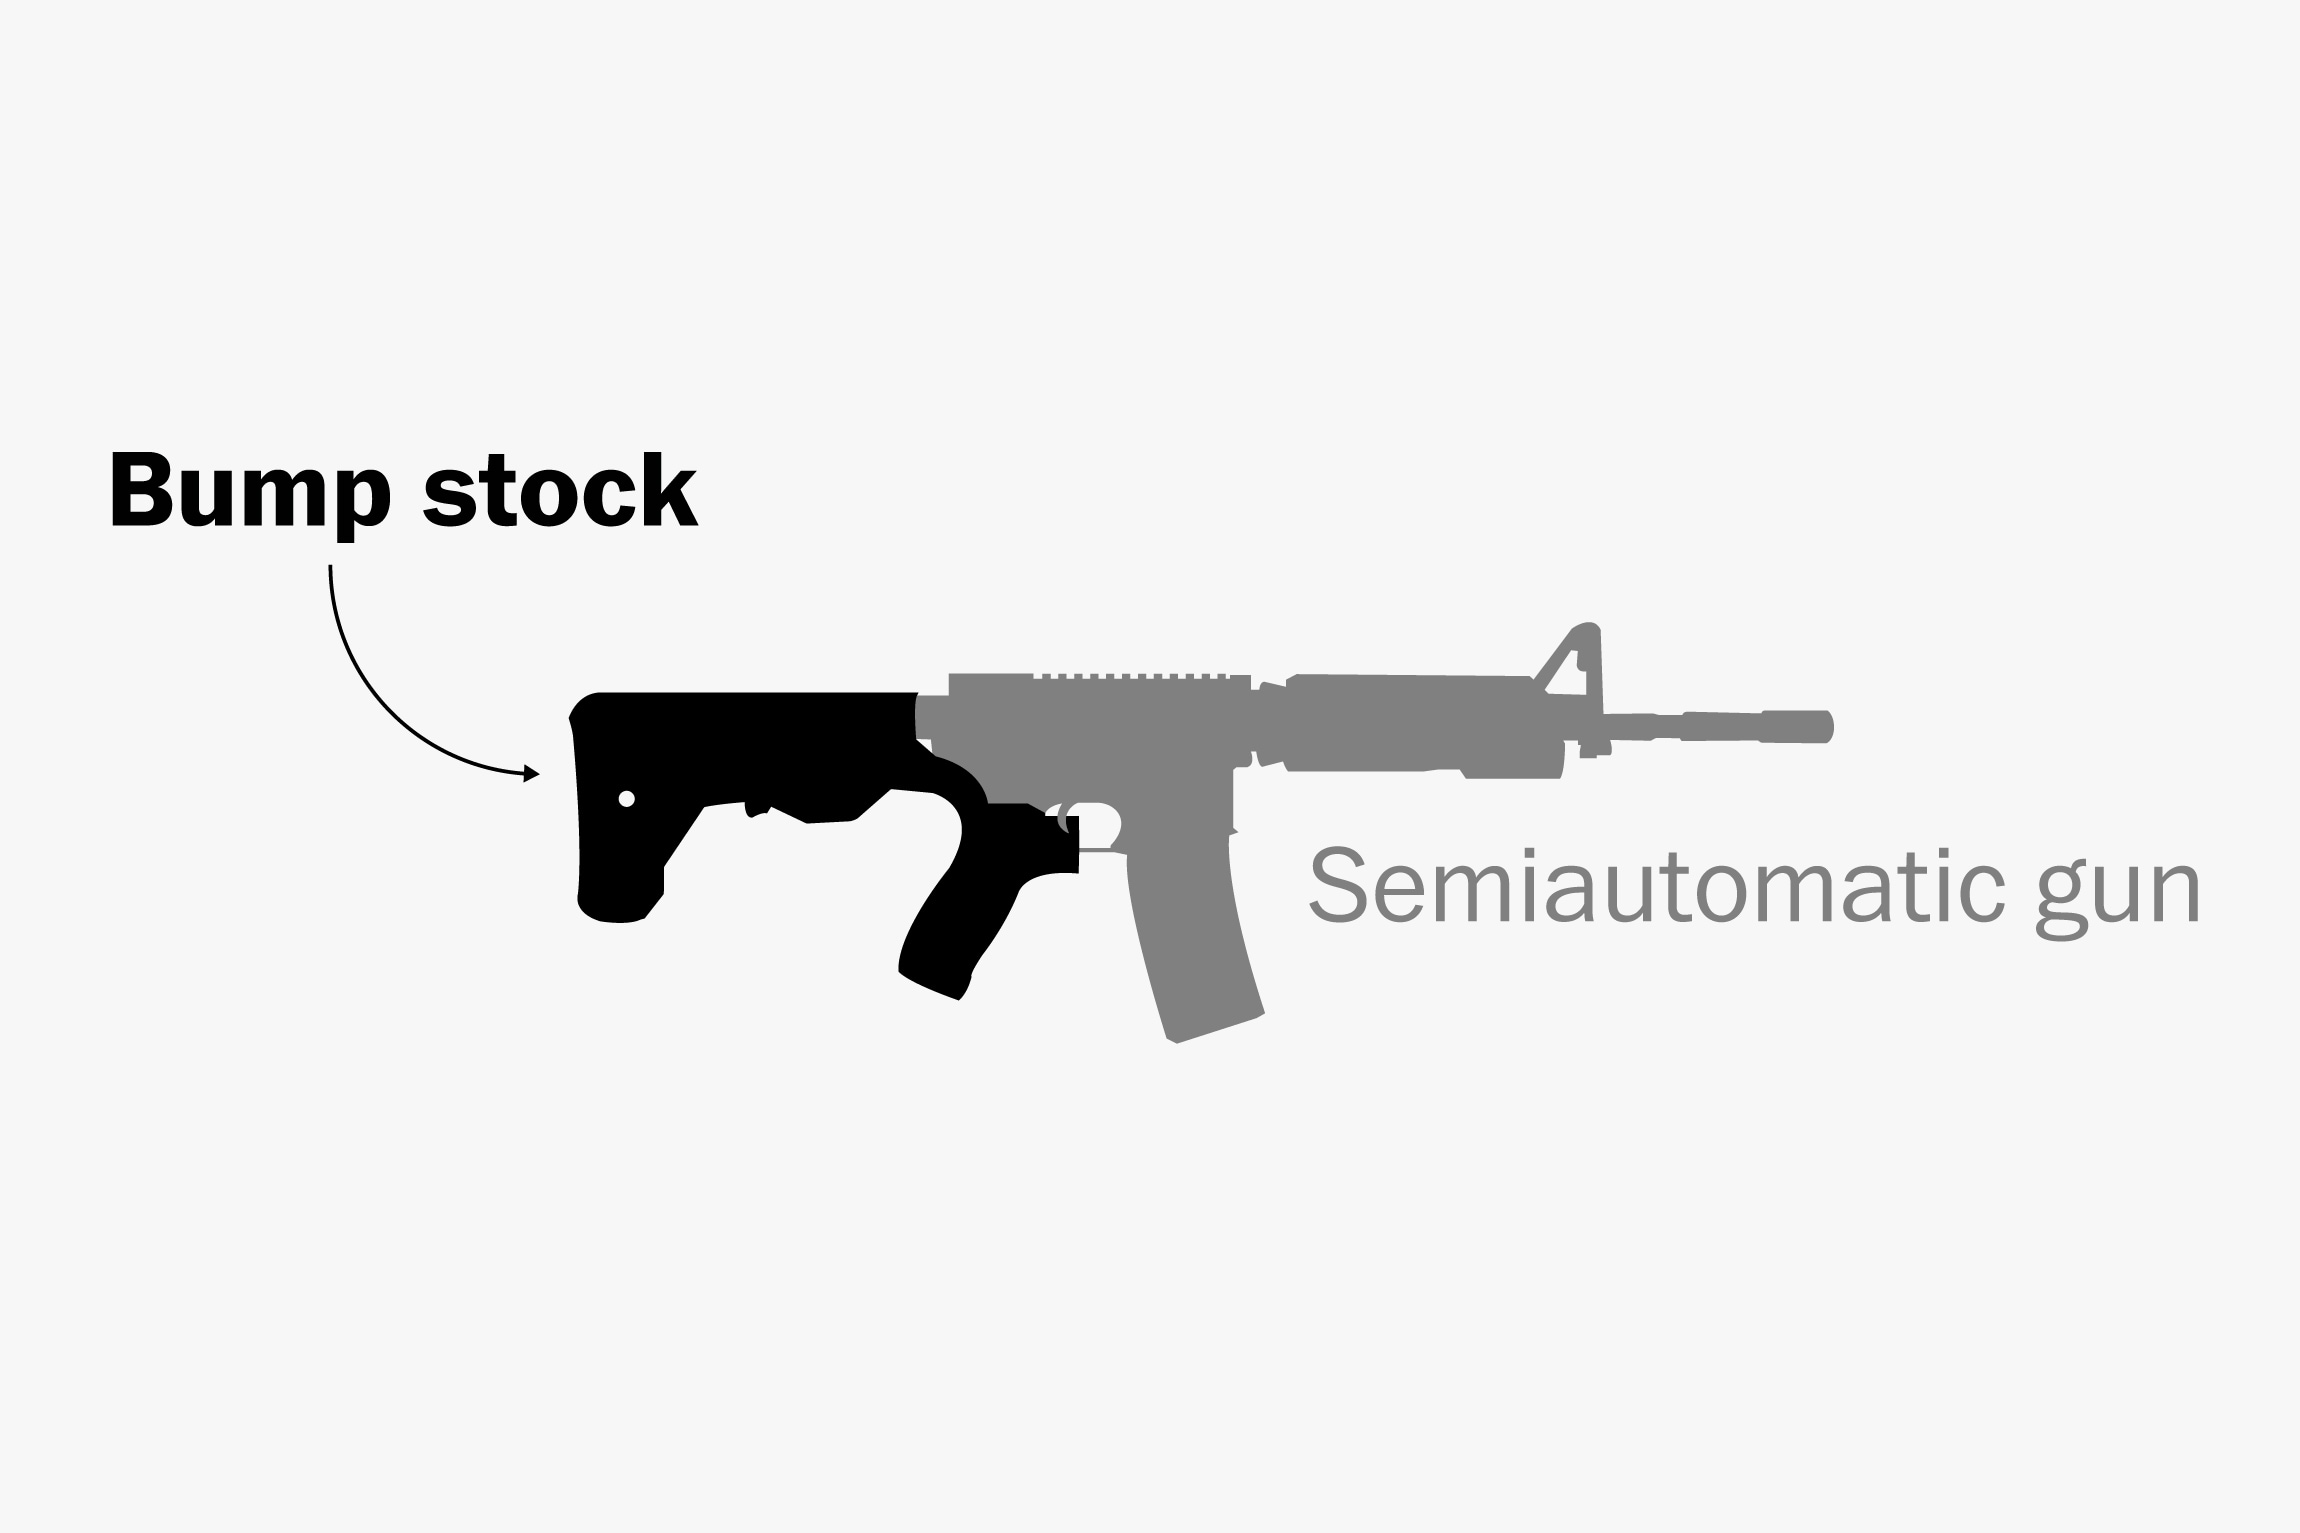 Las Vegas Massacre Gun Control Group Sues Bump Stock